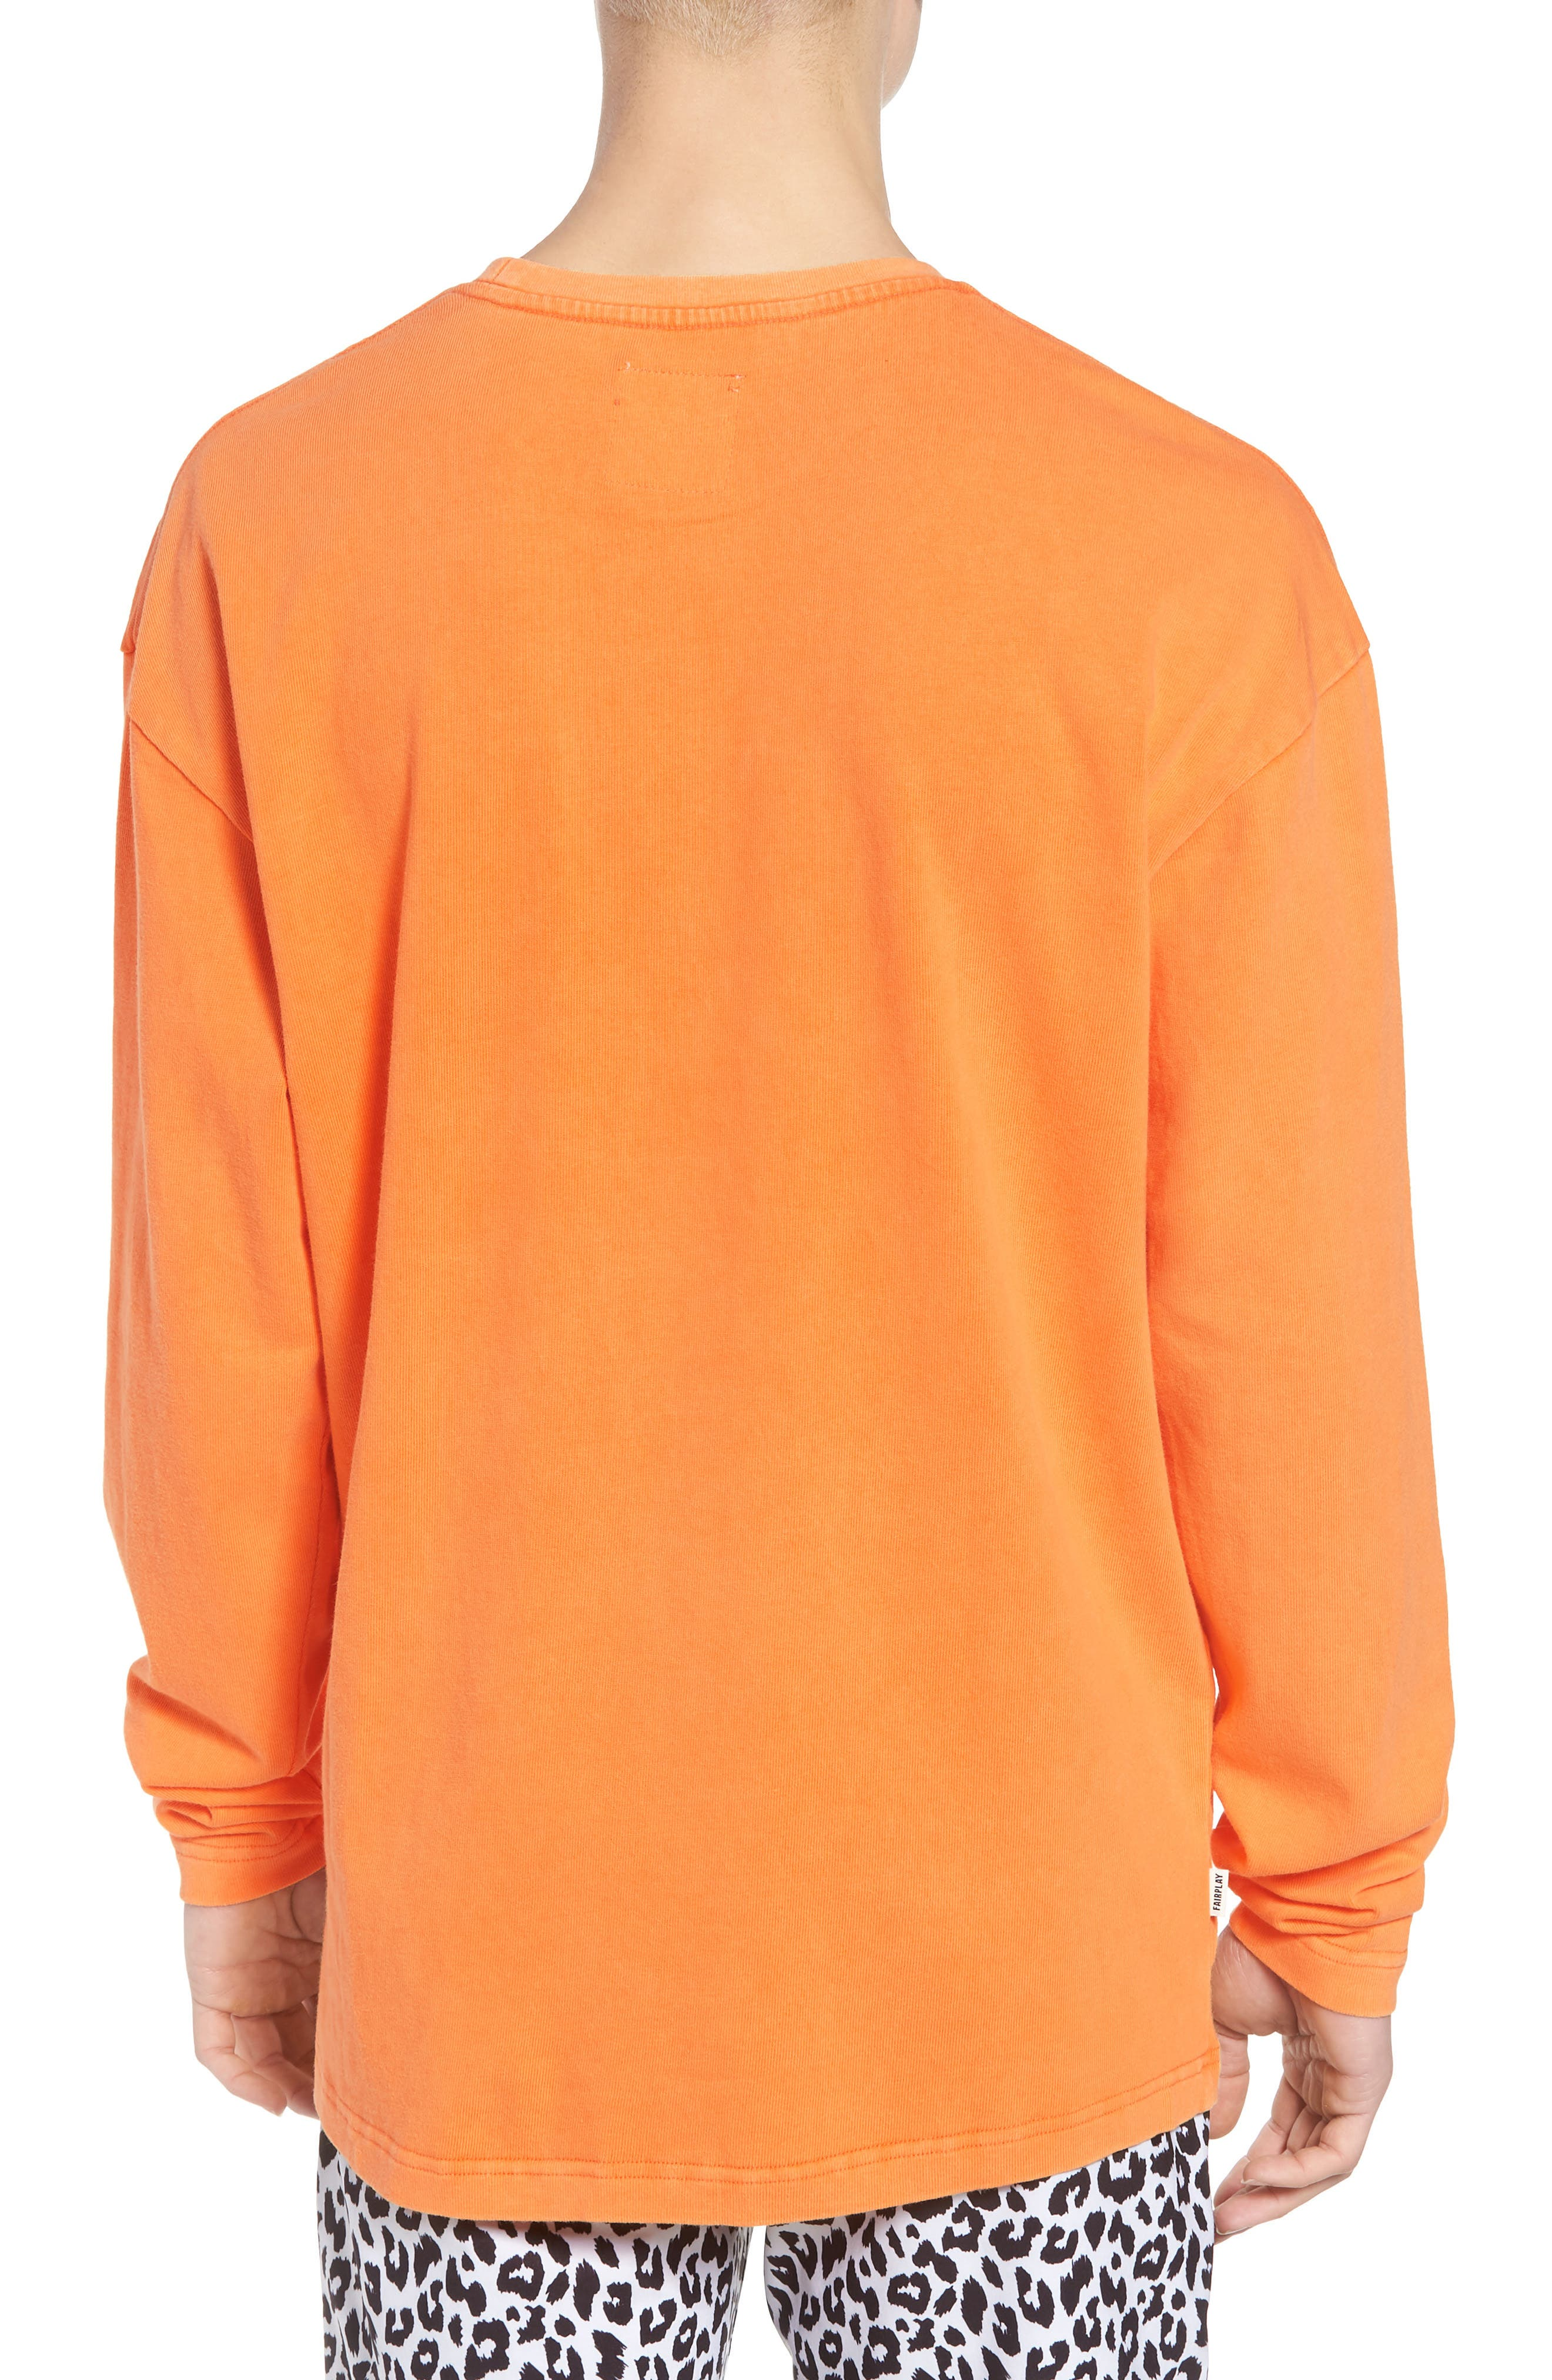 Anderson Sweatshirt,                             Alternate thumbnail 2, color,                             Orange